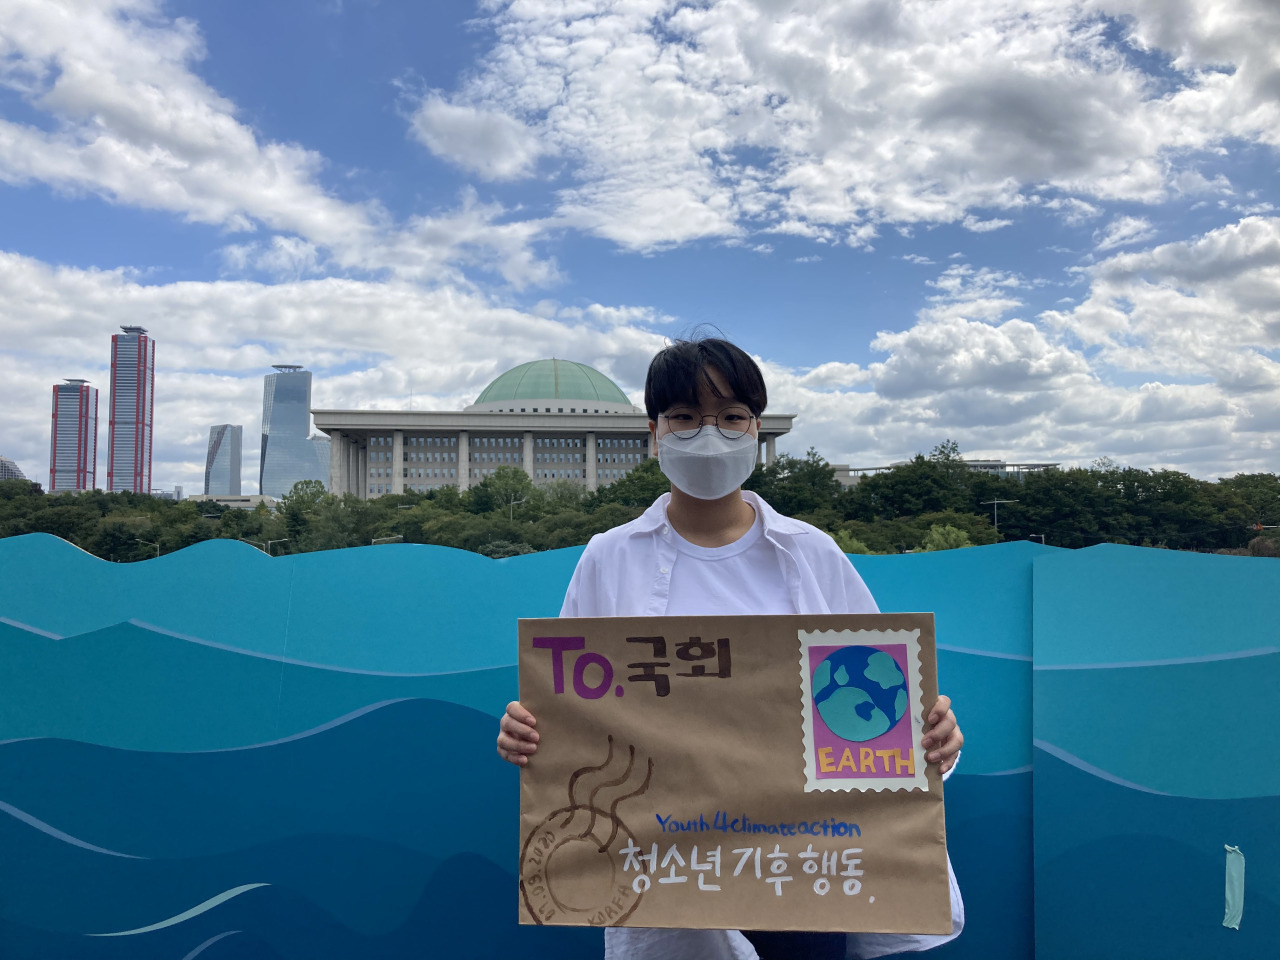 Teenage climate activist Yoon Hyeon-jeong poses for a photo in front of the National Assembly in Seoul while holding a placard urging lawmakers to take action on the climate crisis. (Yoon Hyeon-jeong)